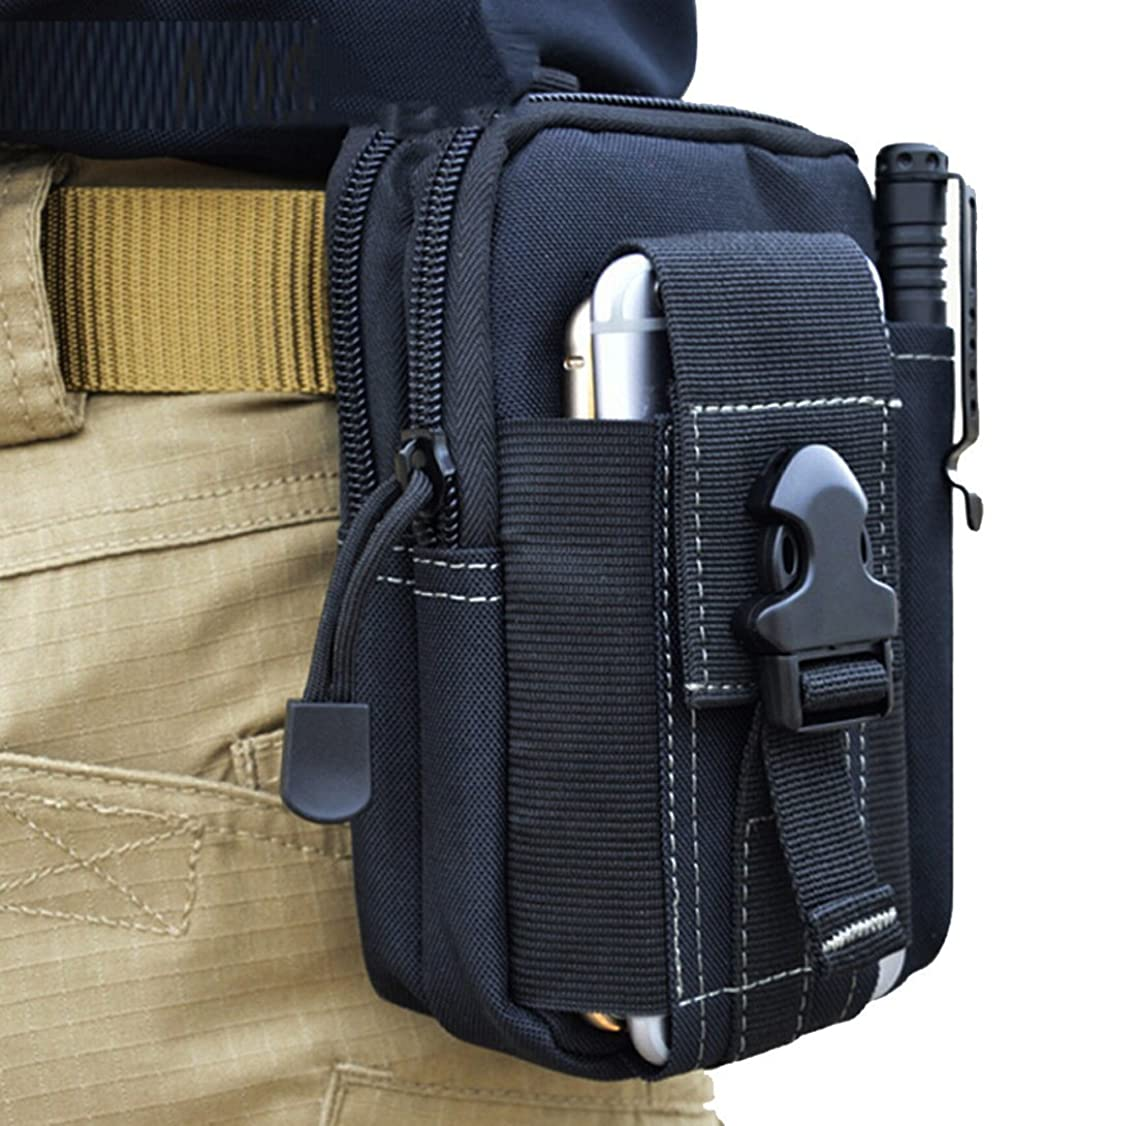 Willcomes Tactical Molle Multipurpose Compact Pouch Utility Gadget Belt Waist Bag Pocket Money Purse for Outdoor Sports with Cell Phone Holster